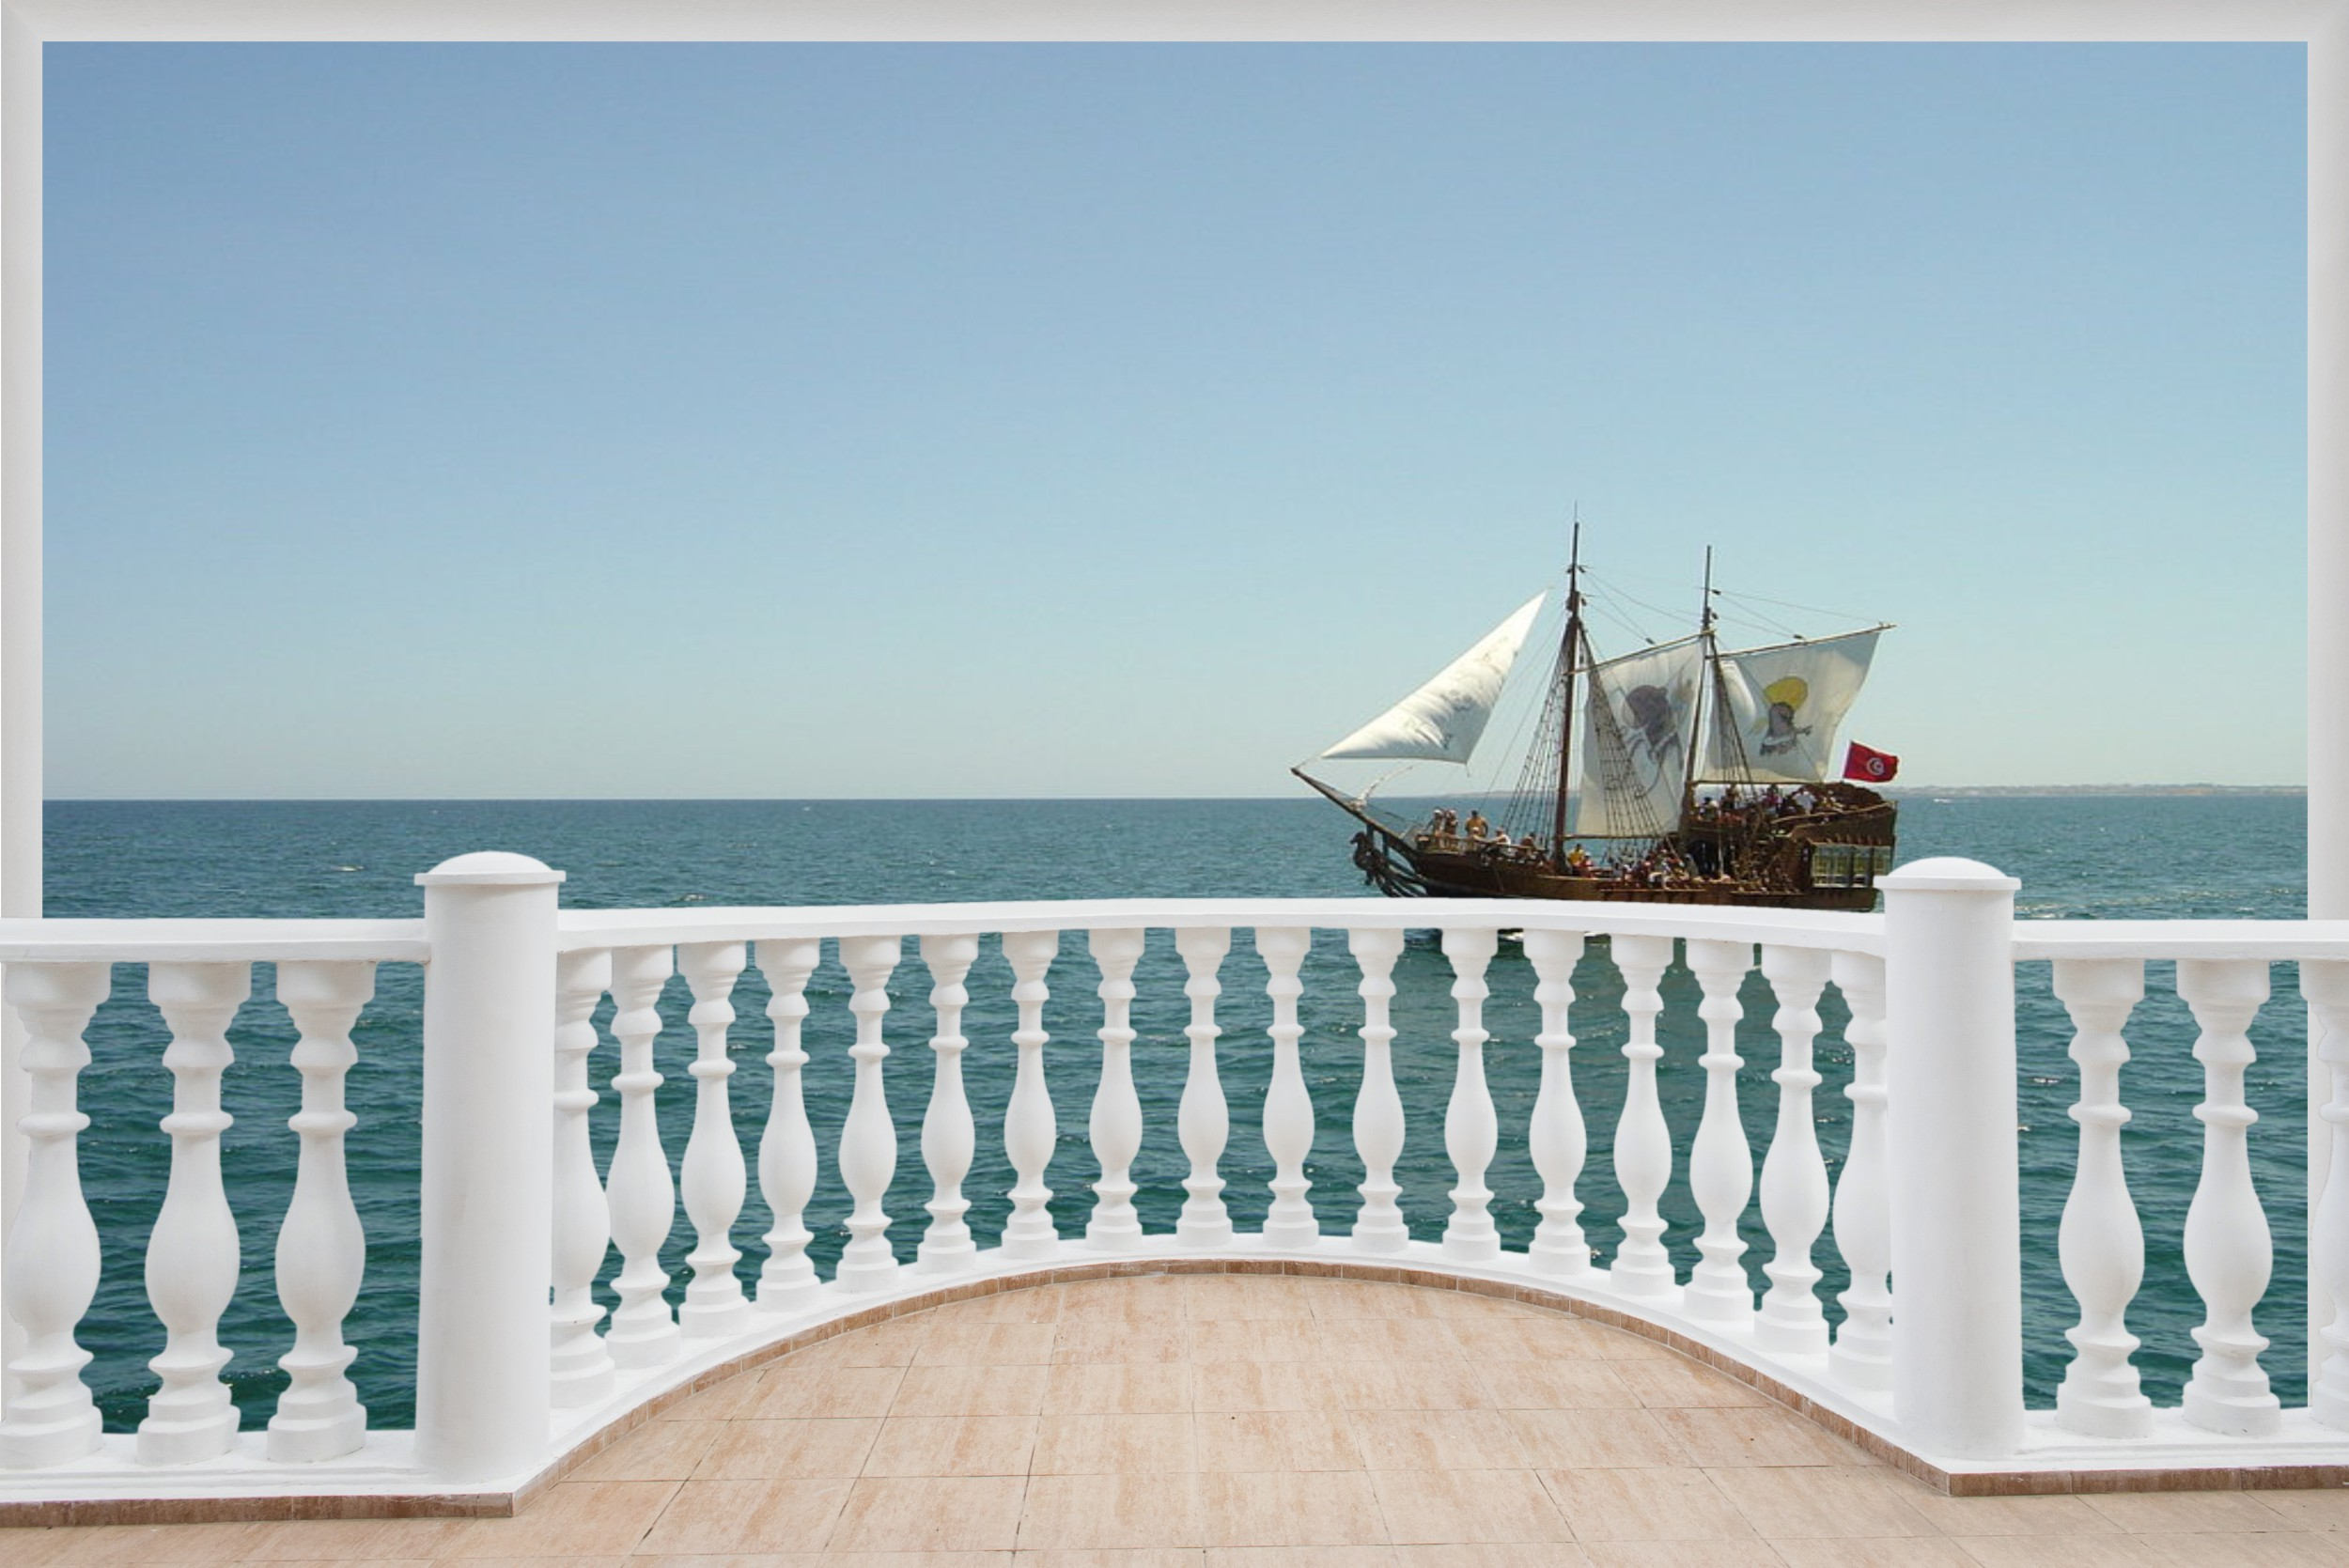 Huge 3D Balcony Pirate Ship Schooner Wall Stickers Decal Wallpaper 501